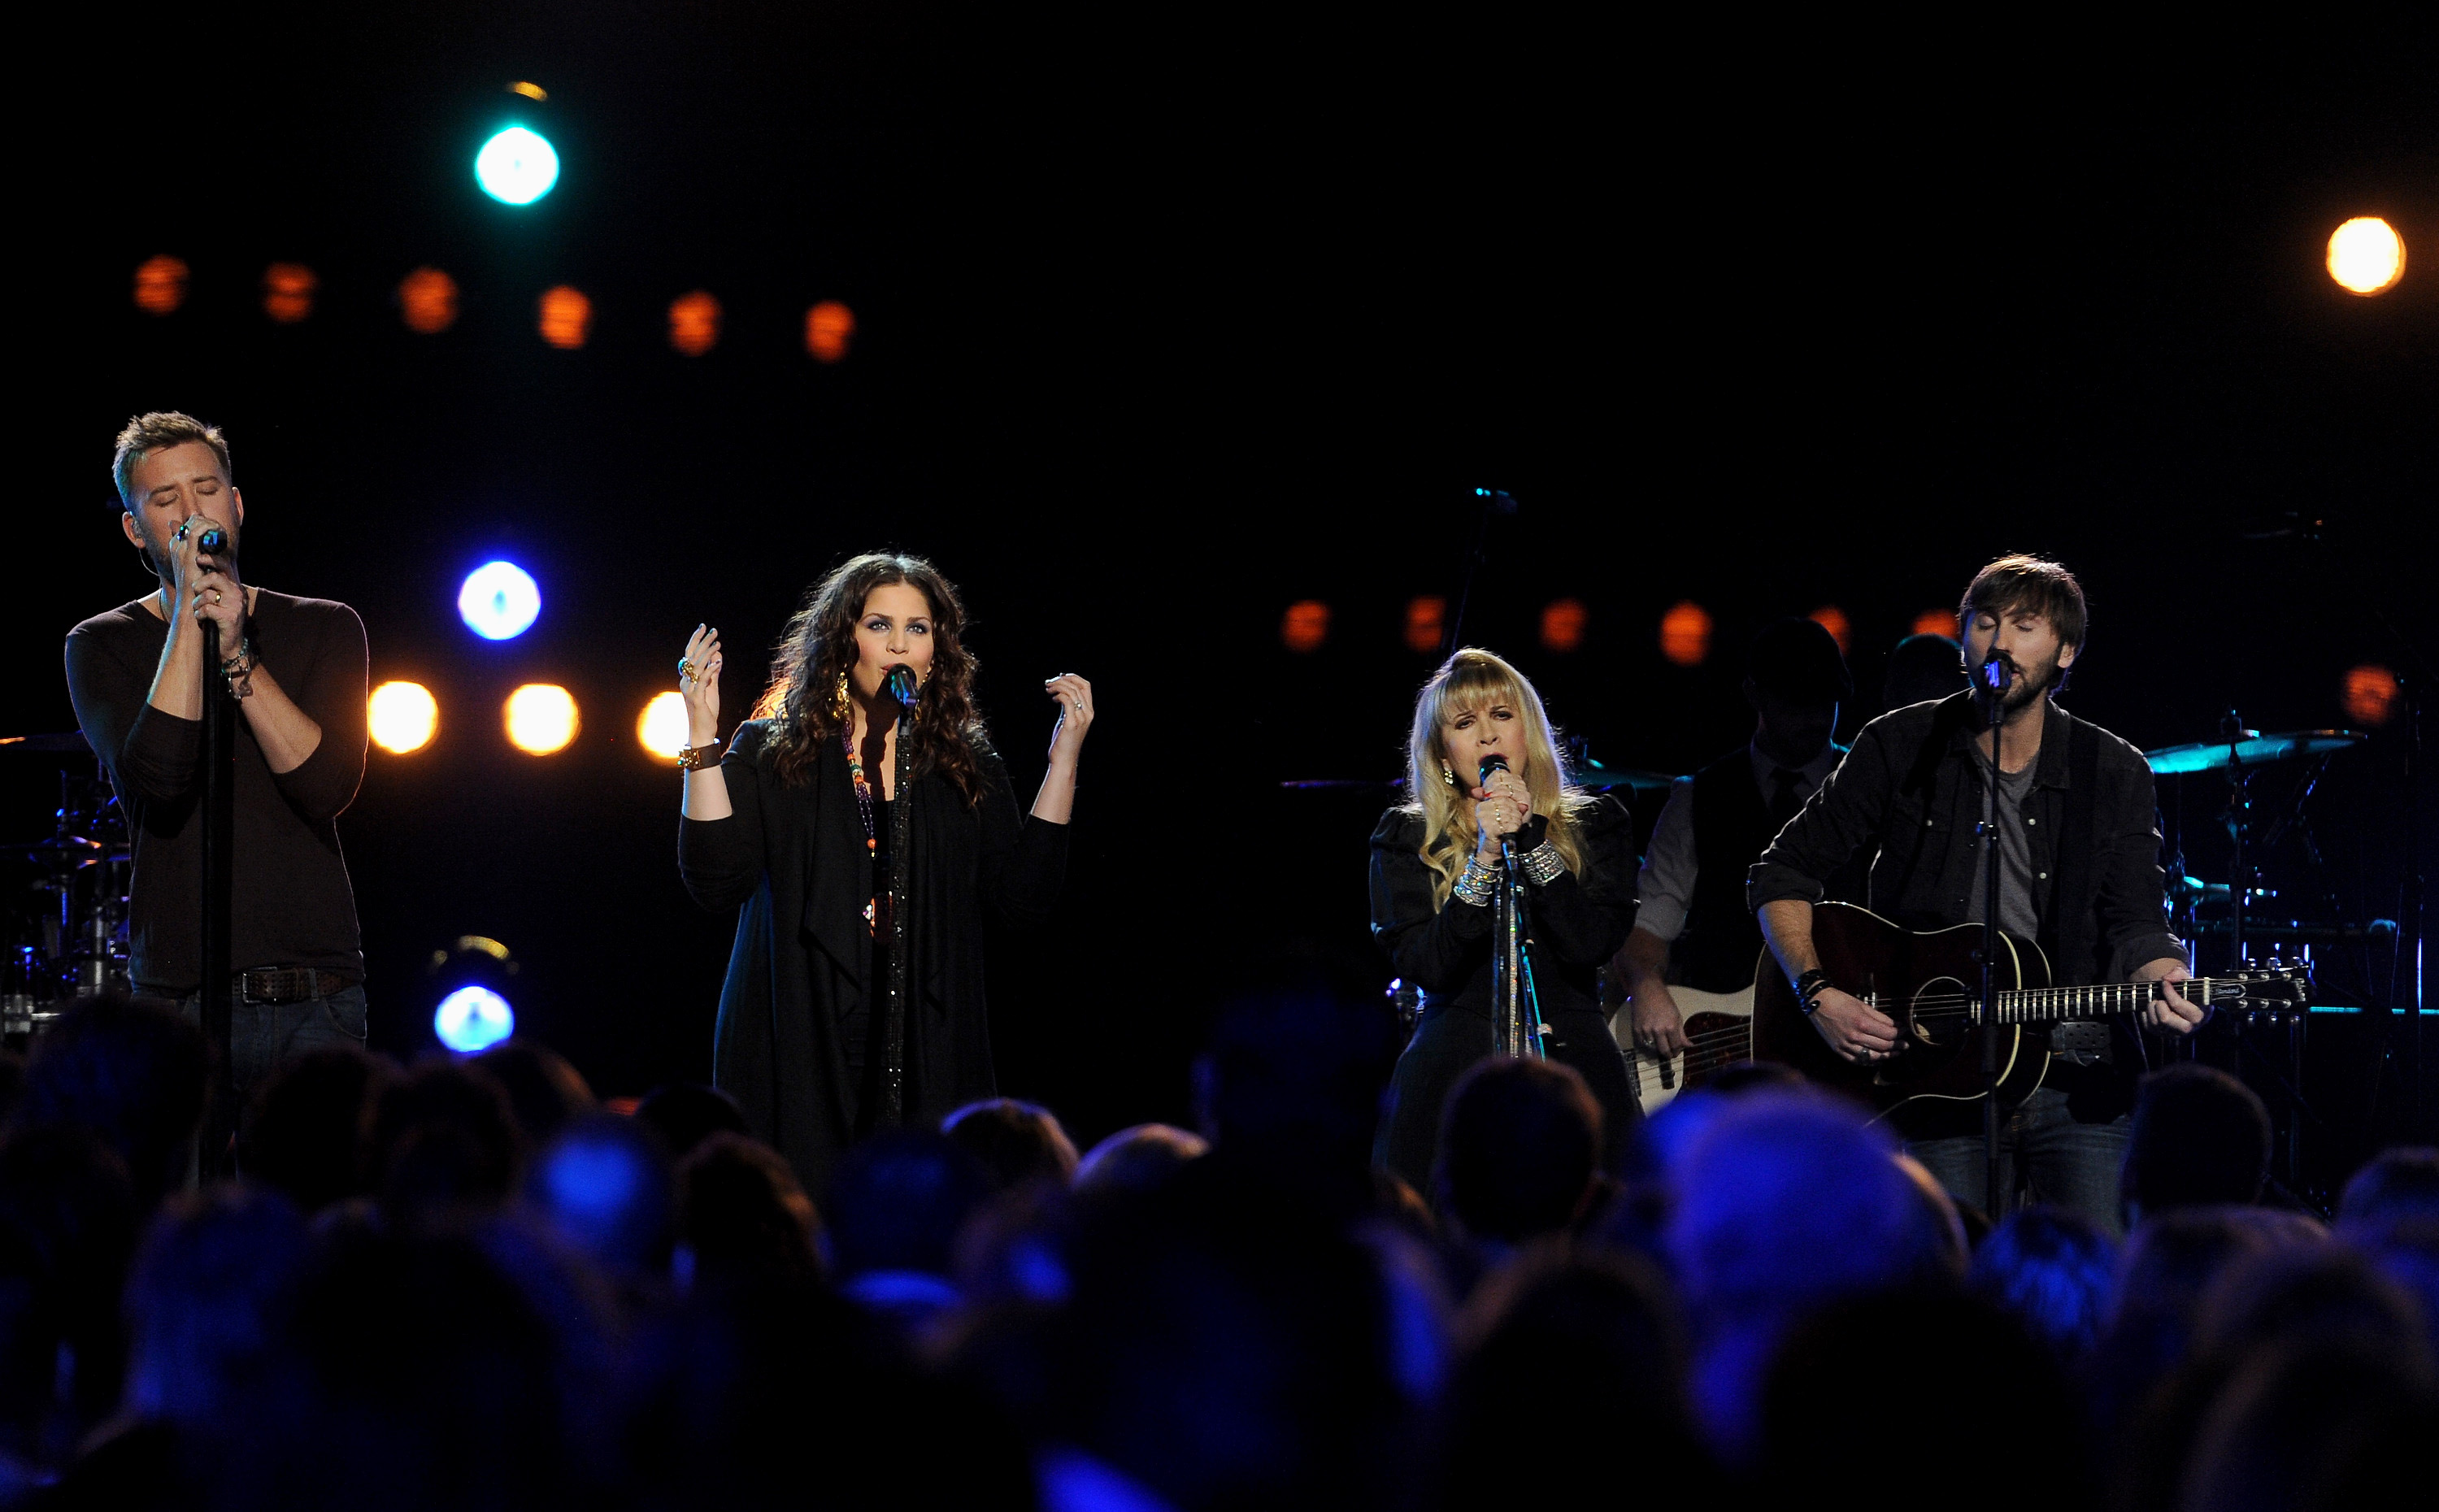 Charles Kelley, Hillary Scott, Stevie Nicks, Dave Haywood